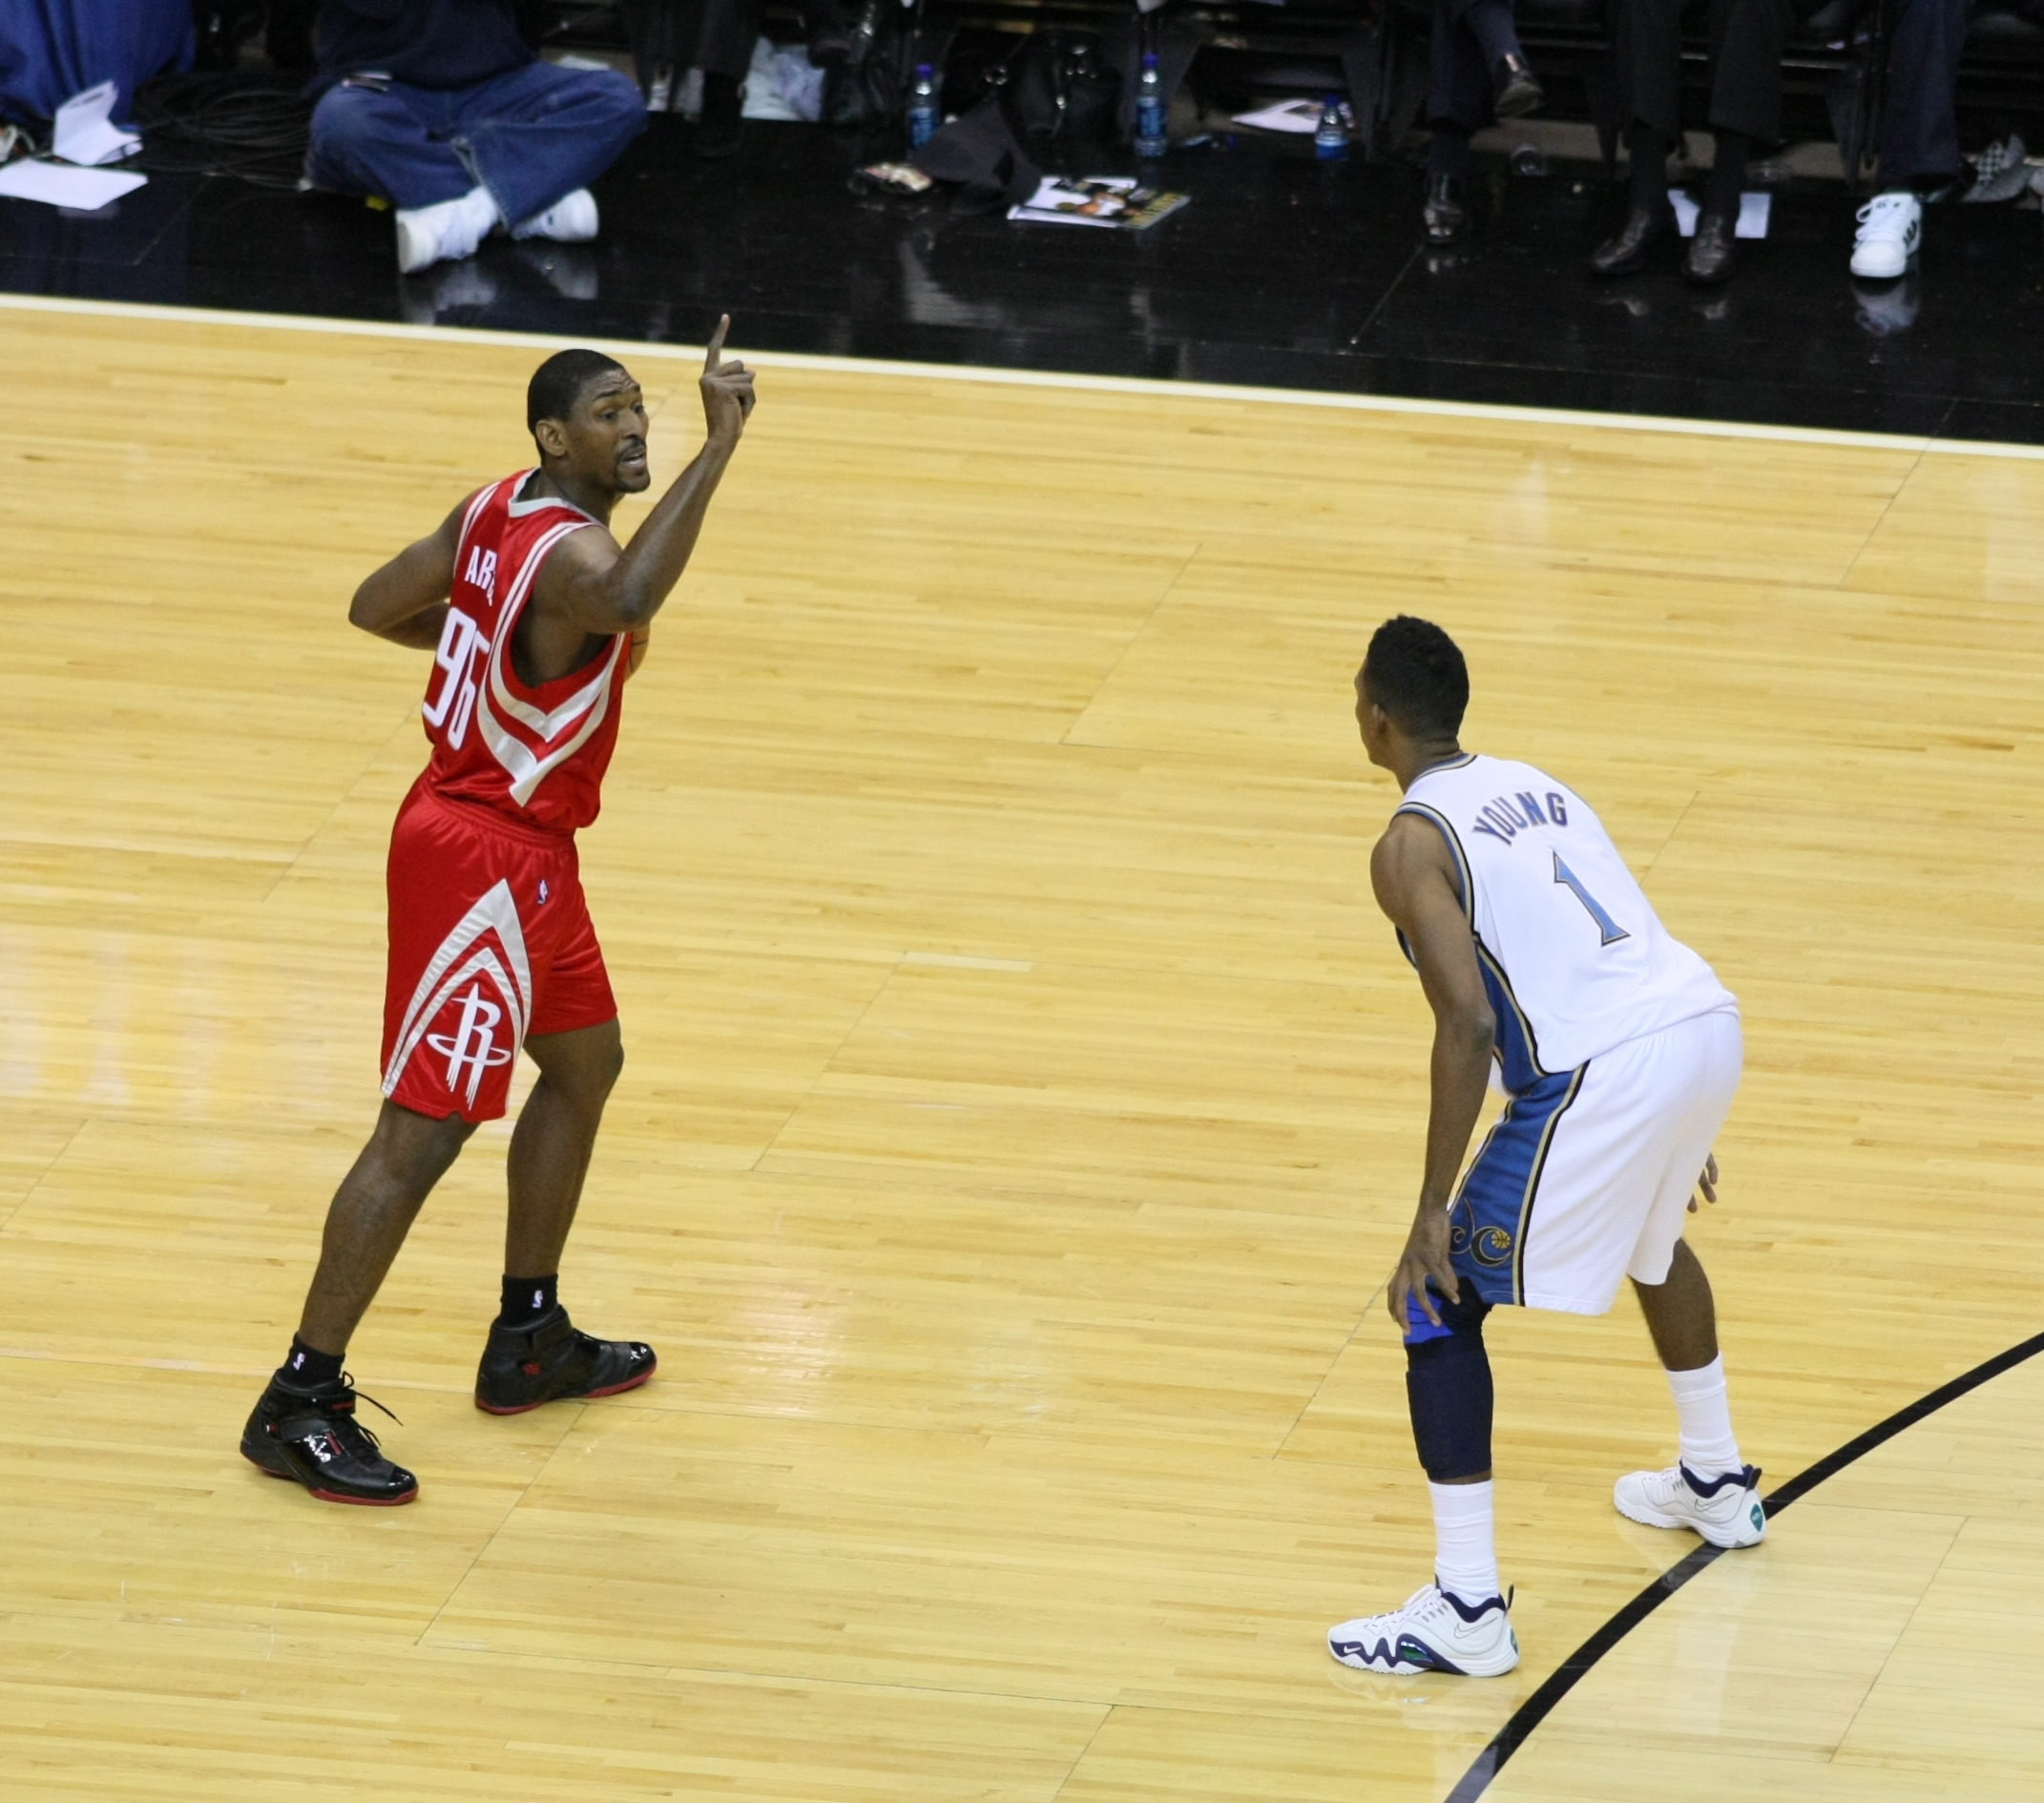 File:Ron Artest Rockets Wizards.jpg - Wikimedia Commons